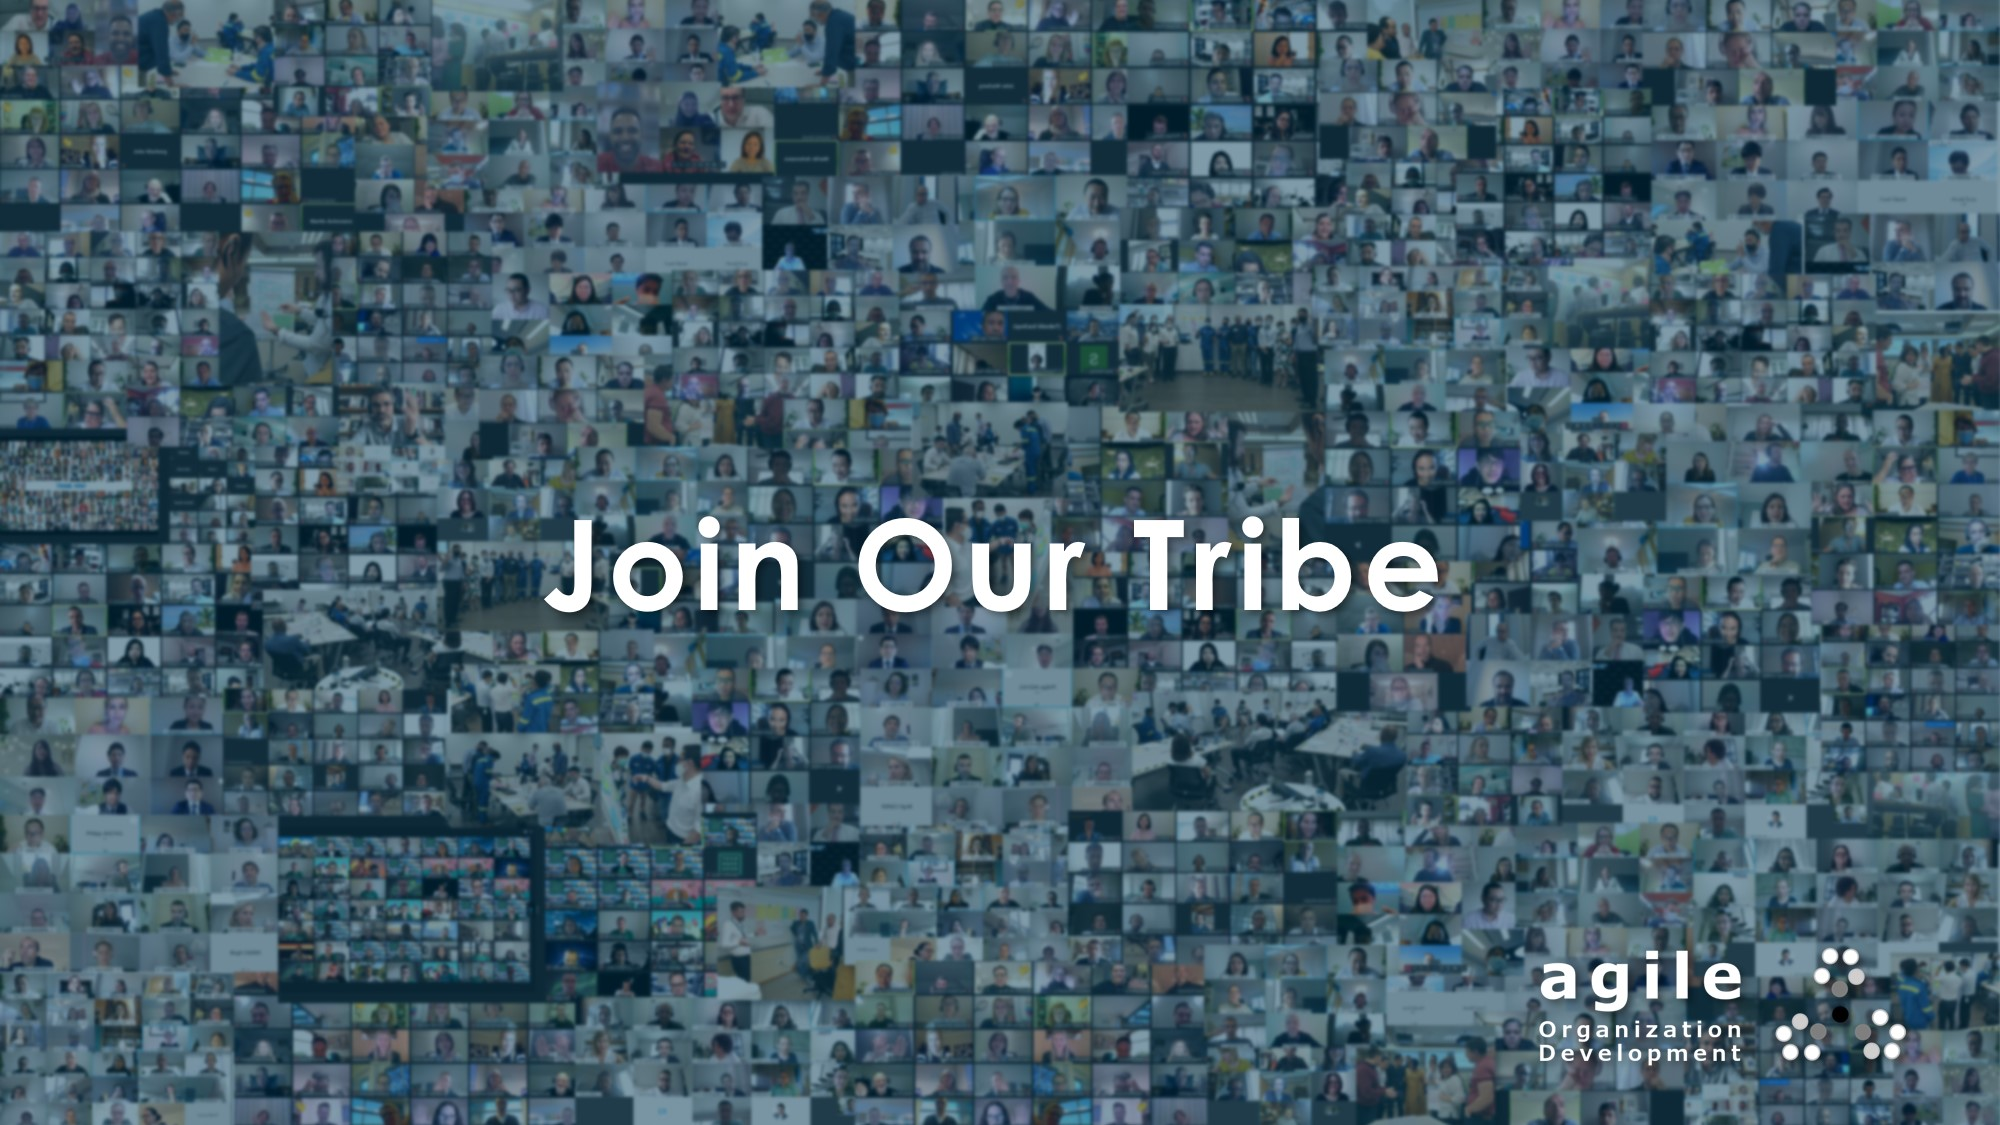 Join Our Tribe at Agile Organization Development